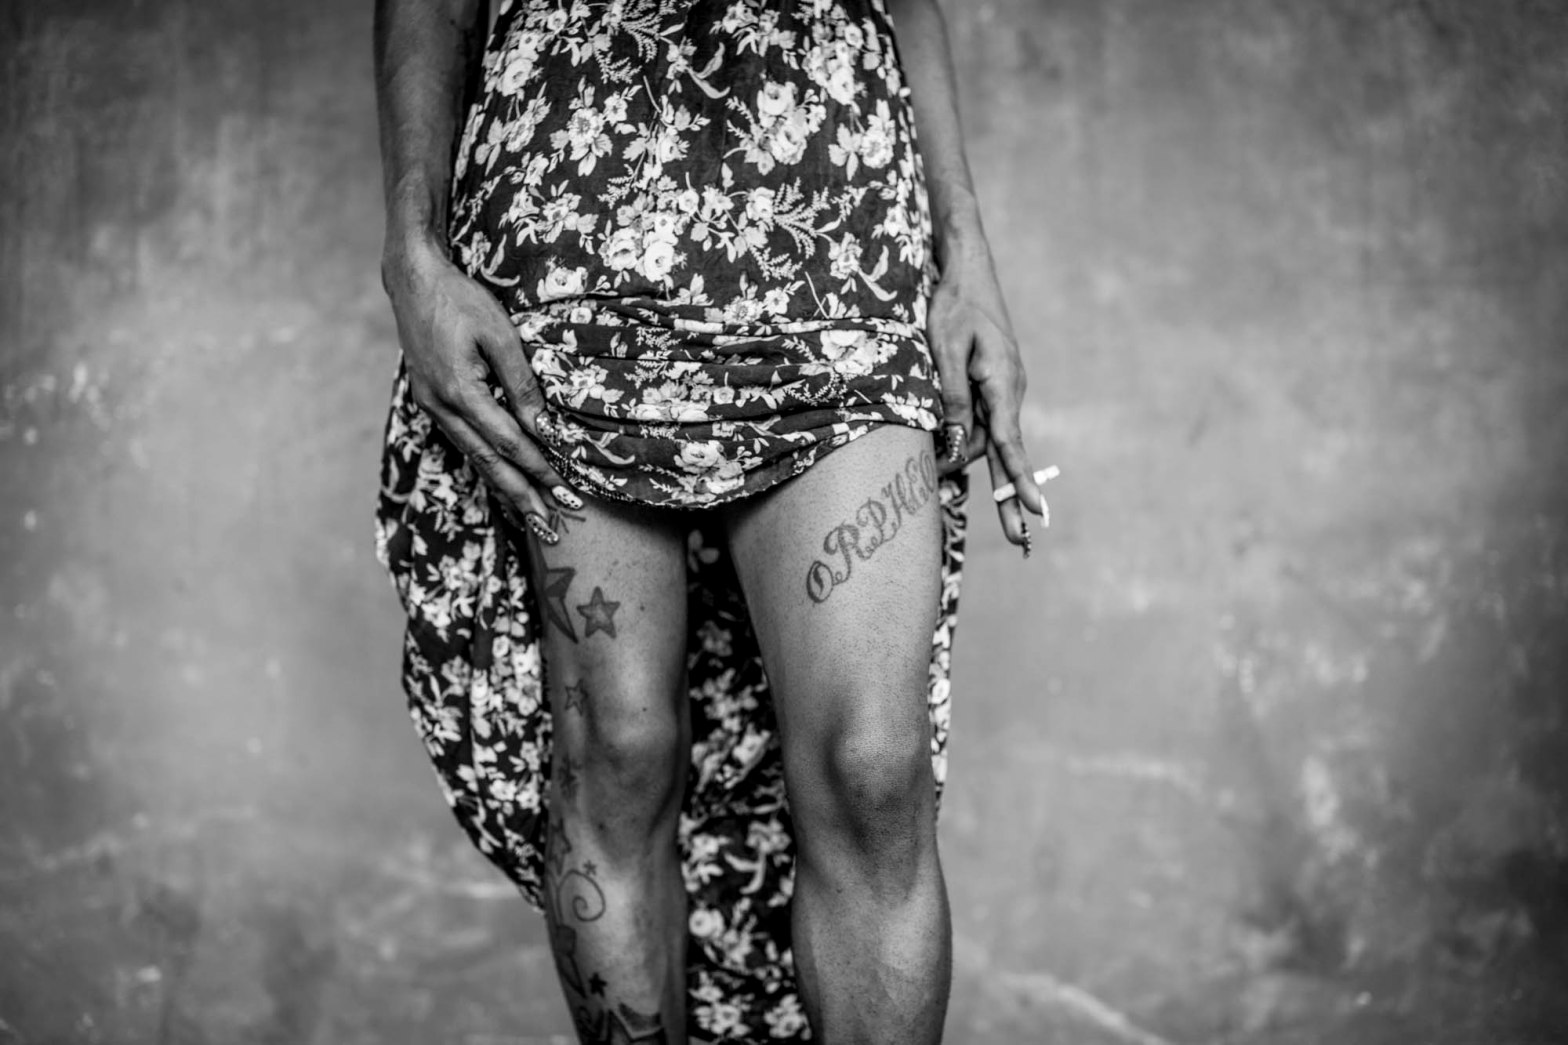 black and white portraits of the powerful trans-women of Guyana Trans United. Images © Jason Florio